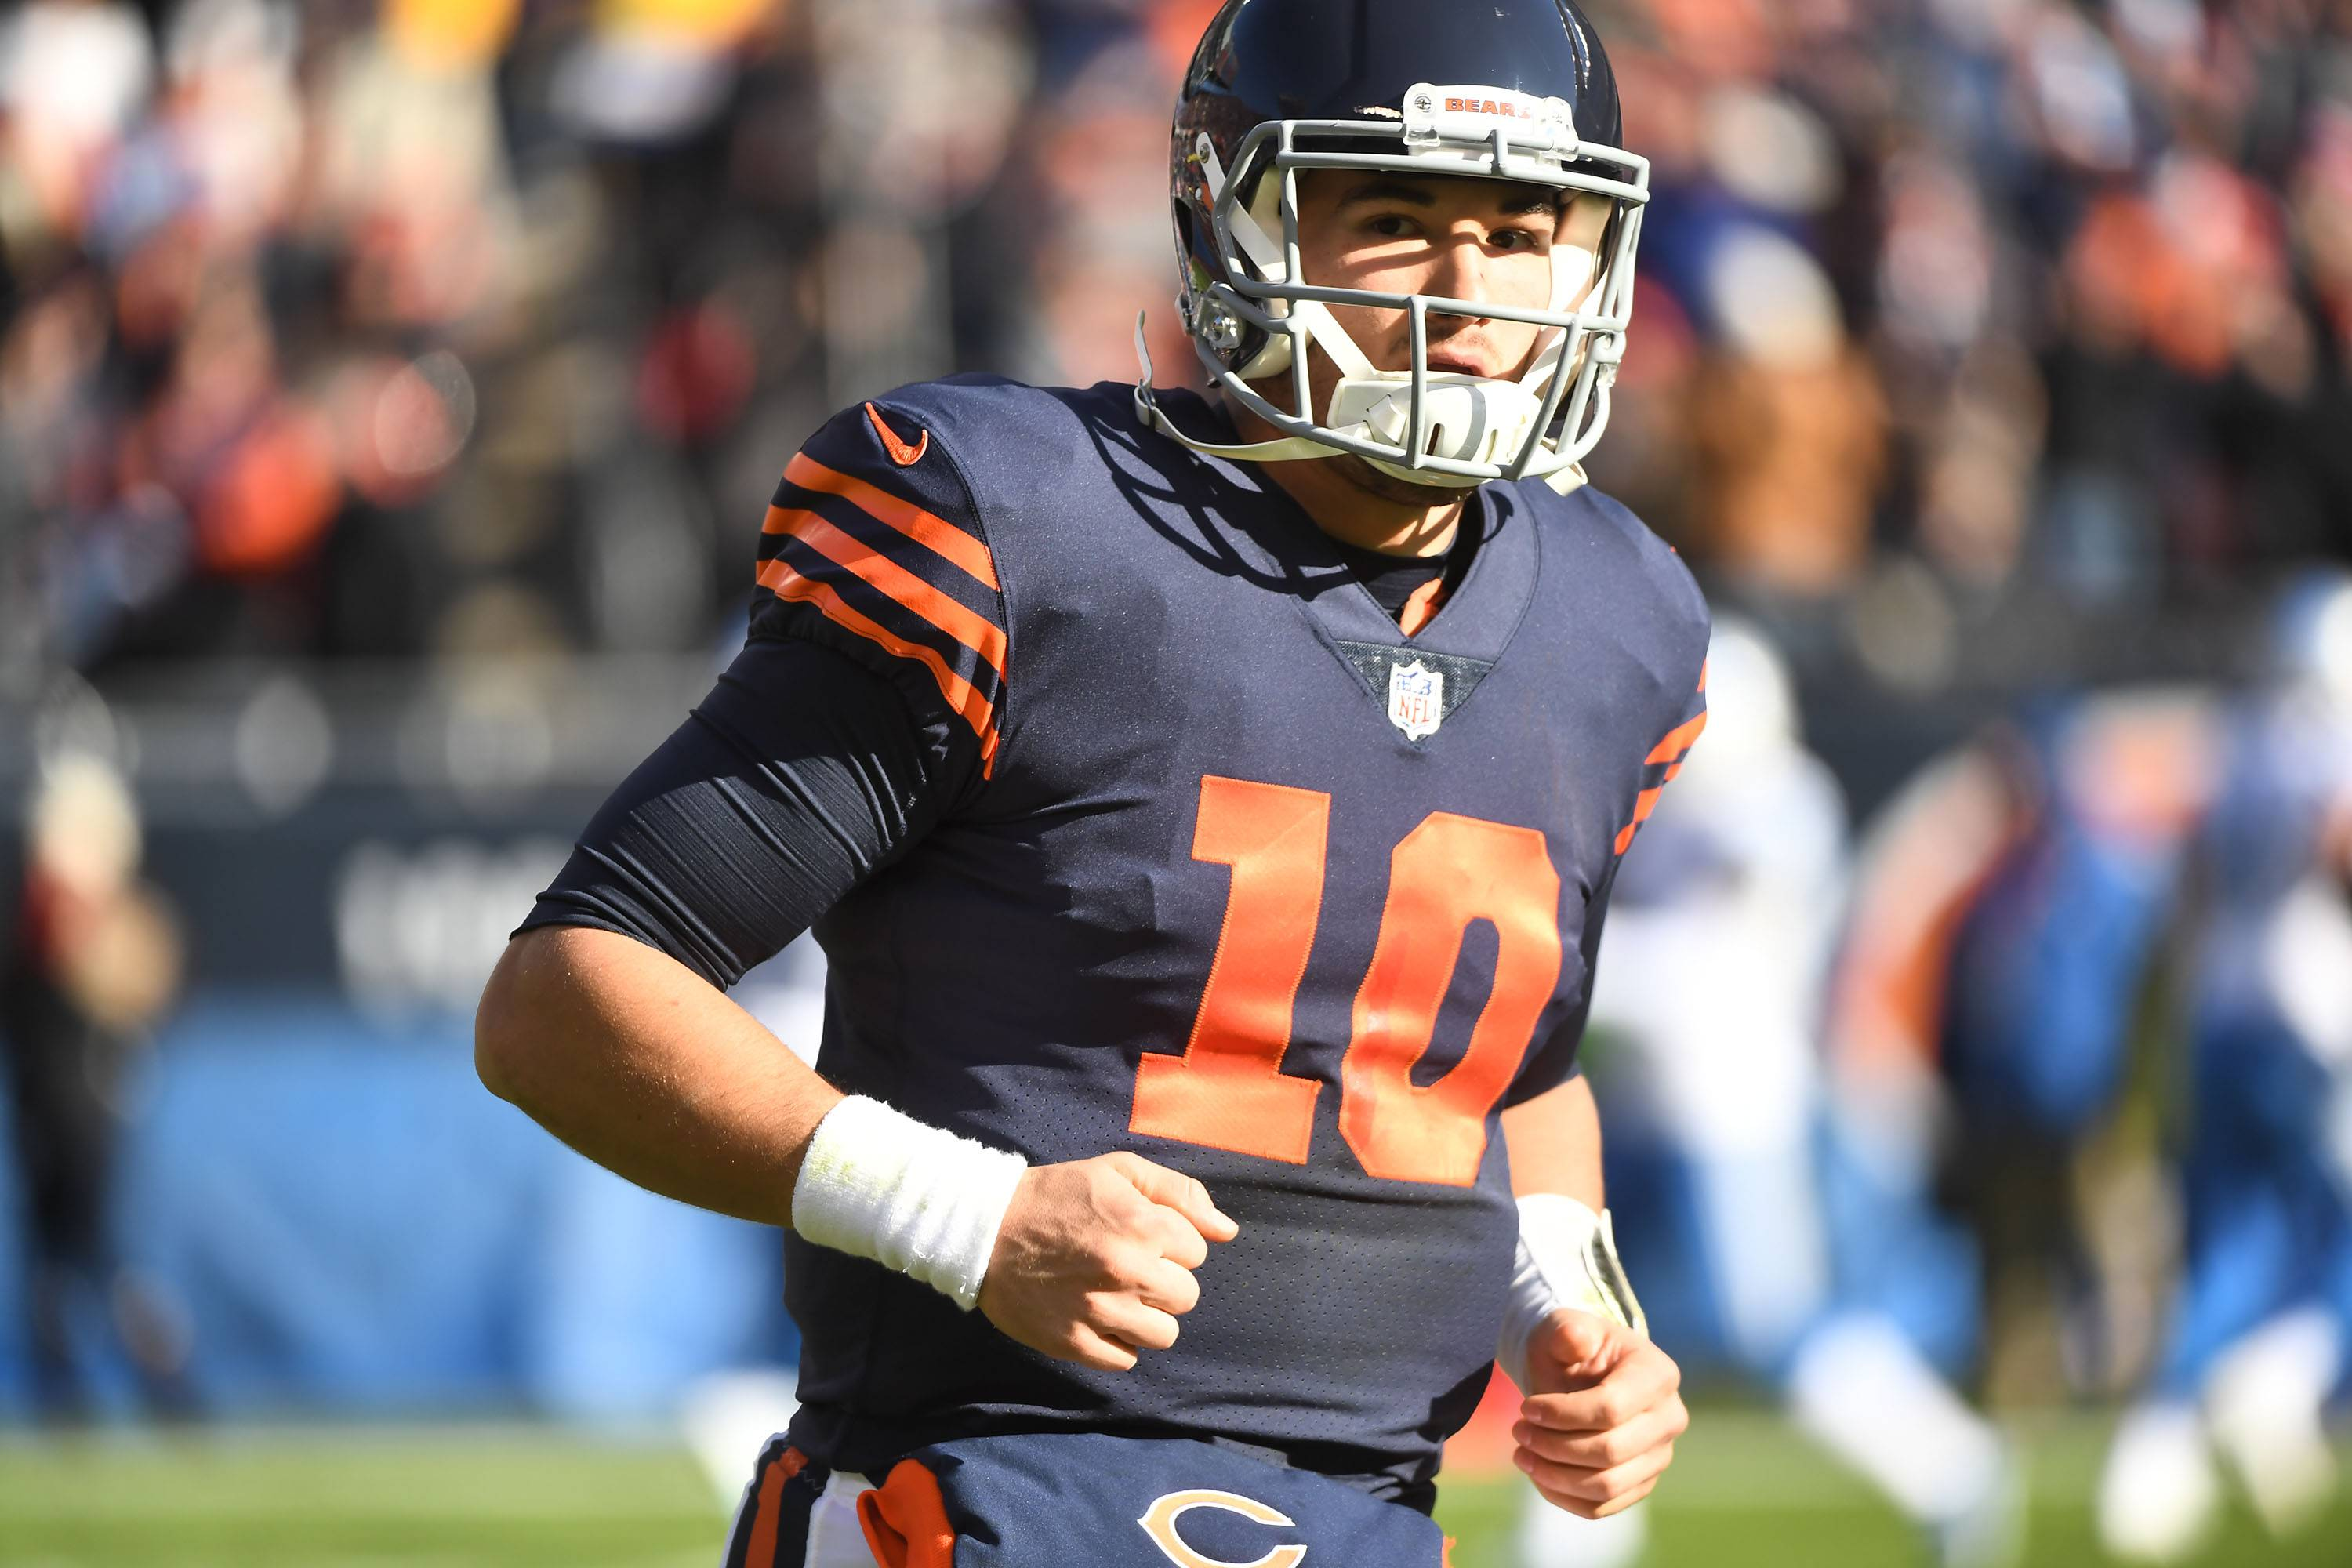 Chicago Bears quarterback Mitchell Trubisky comes off the field Sunday against the Detroit Lions at Soldier Field in Chicago.